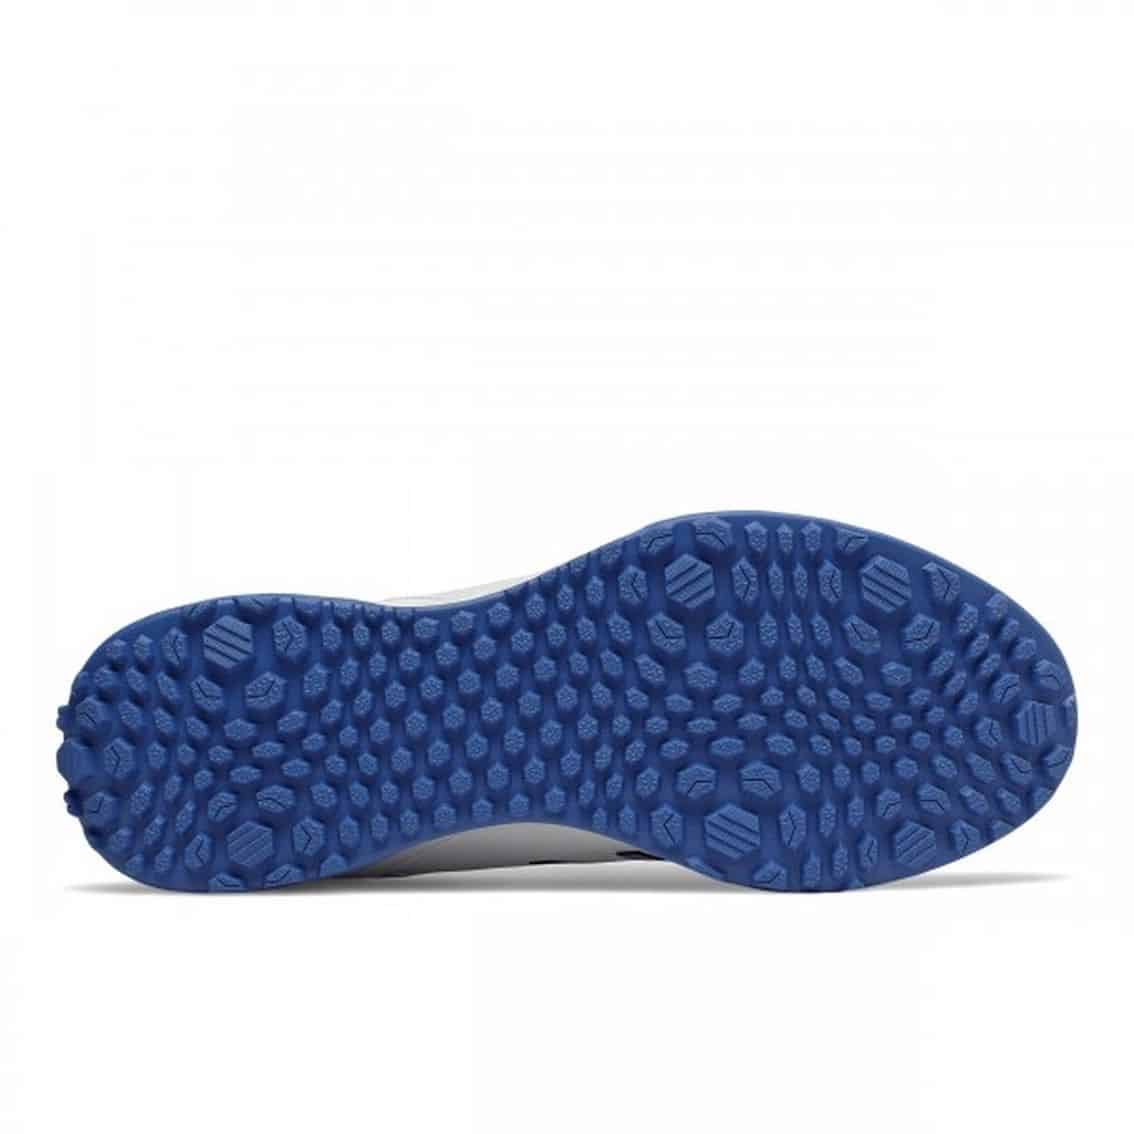 New Balance CK 4020 C4 Rubber Shoe sole